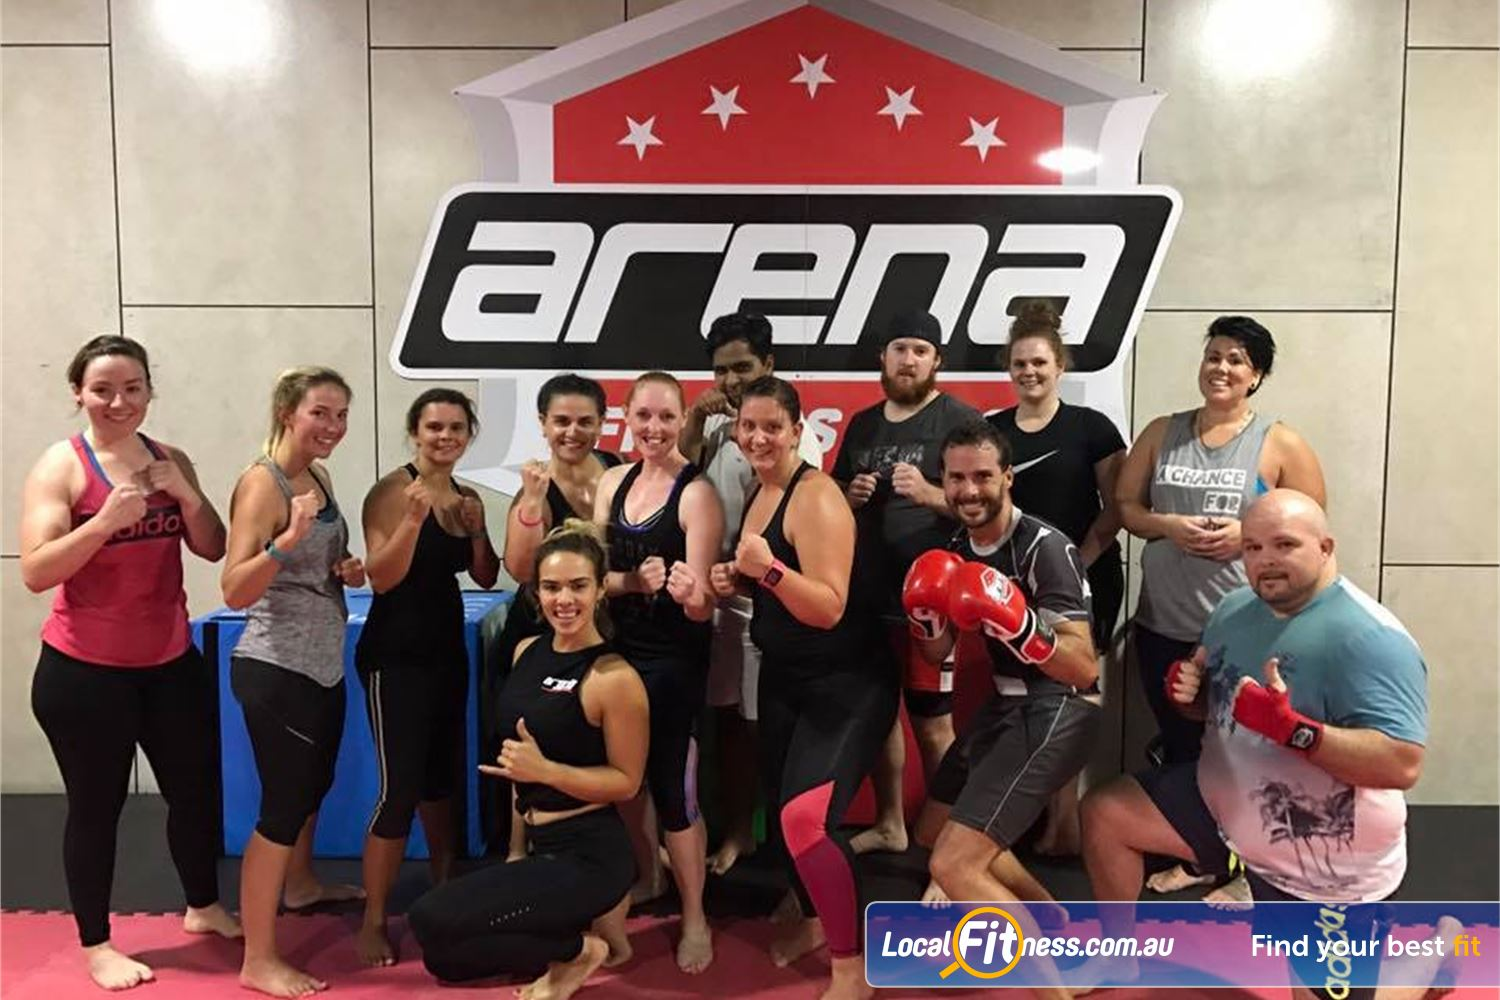 Goodlife Health Clubs Near Belmont Join the Carindale Arena Fitness MMA family and burn calories together.